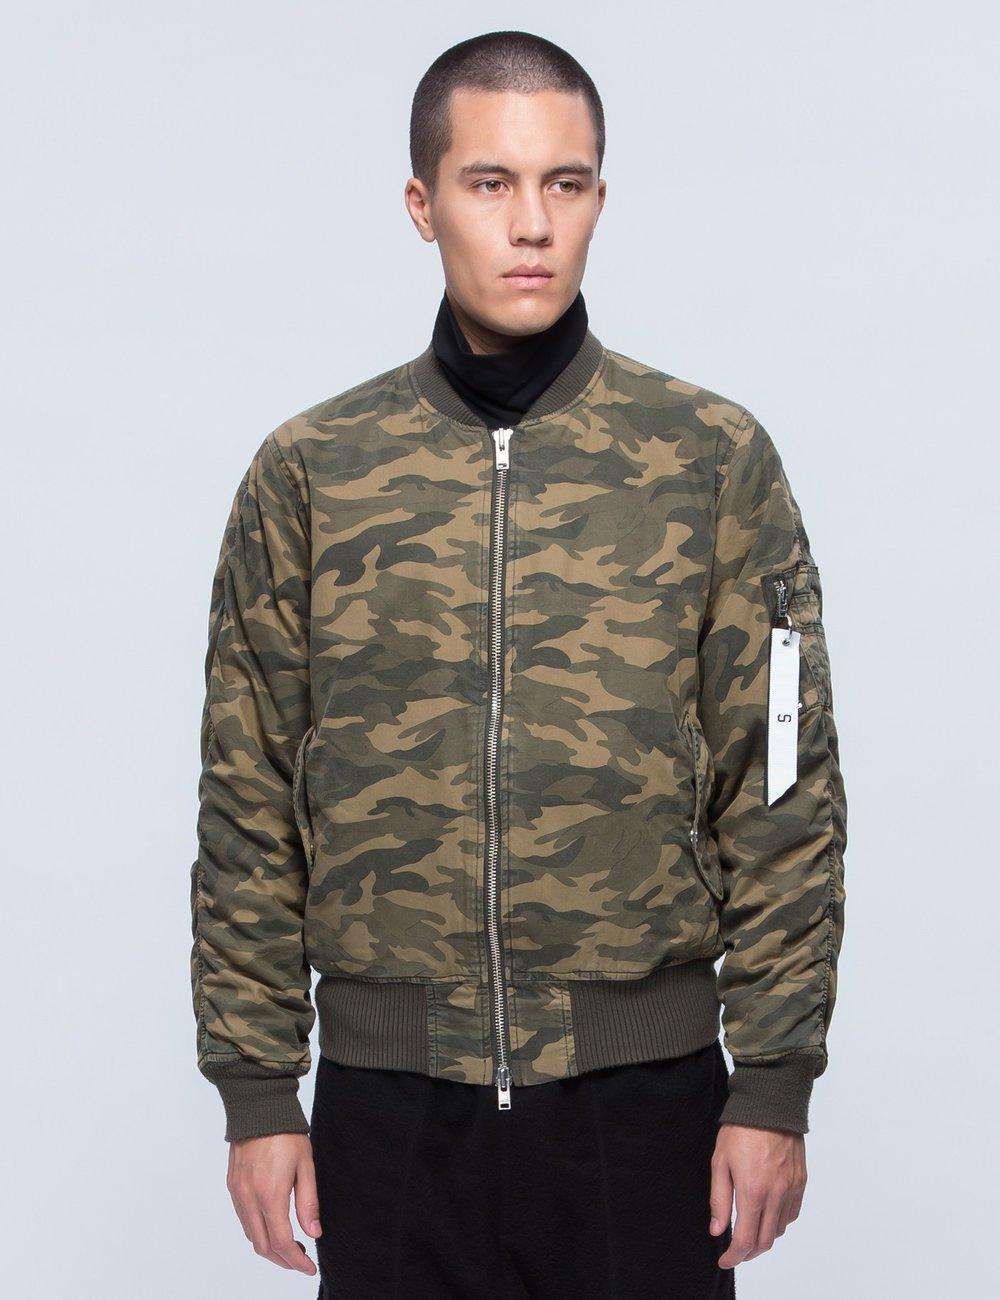 CAMO WASHED BOMBER JACKET by STAMPD